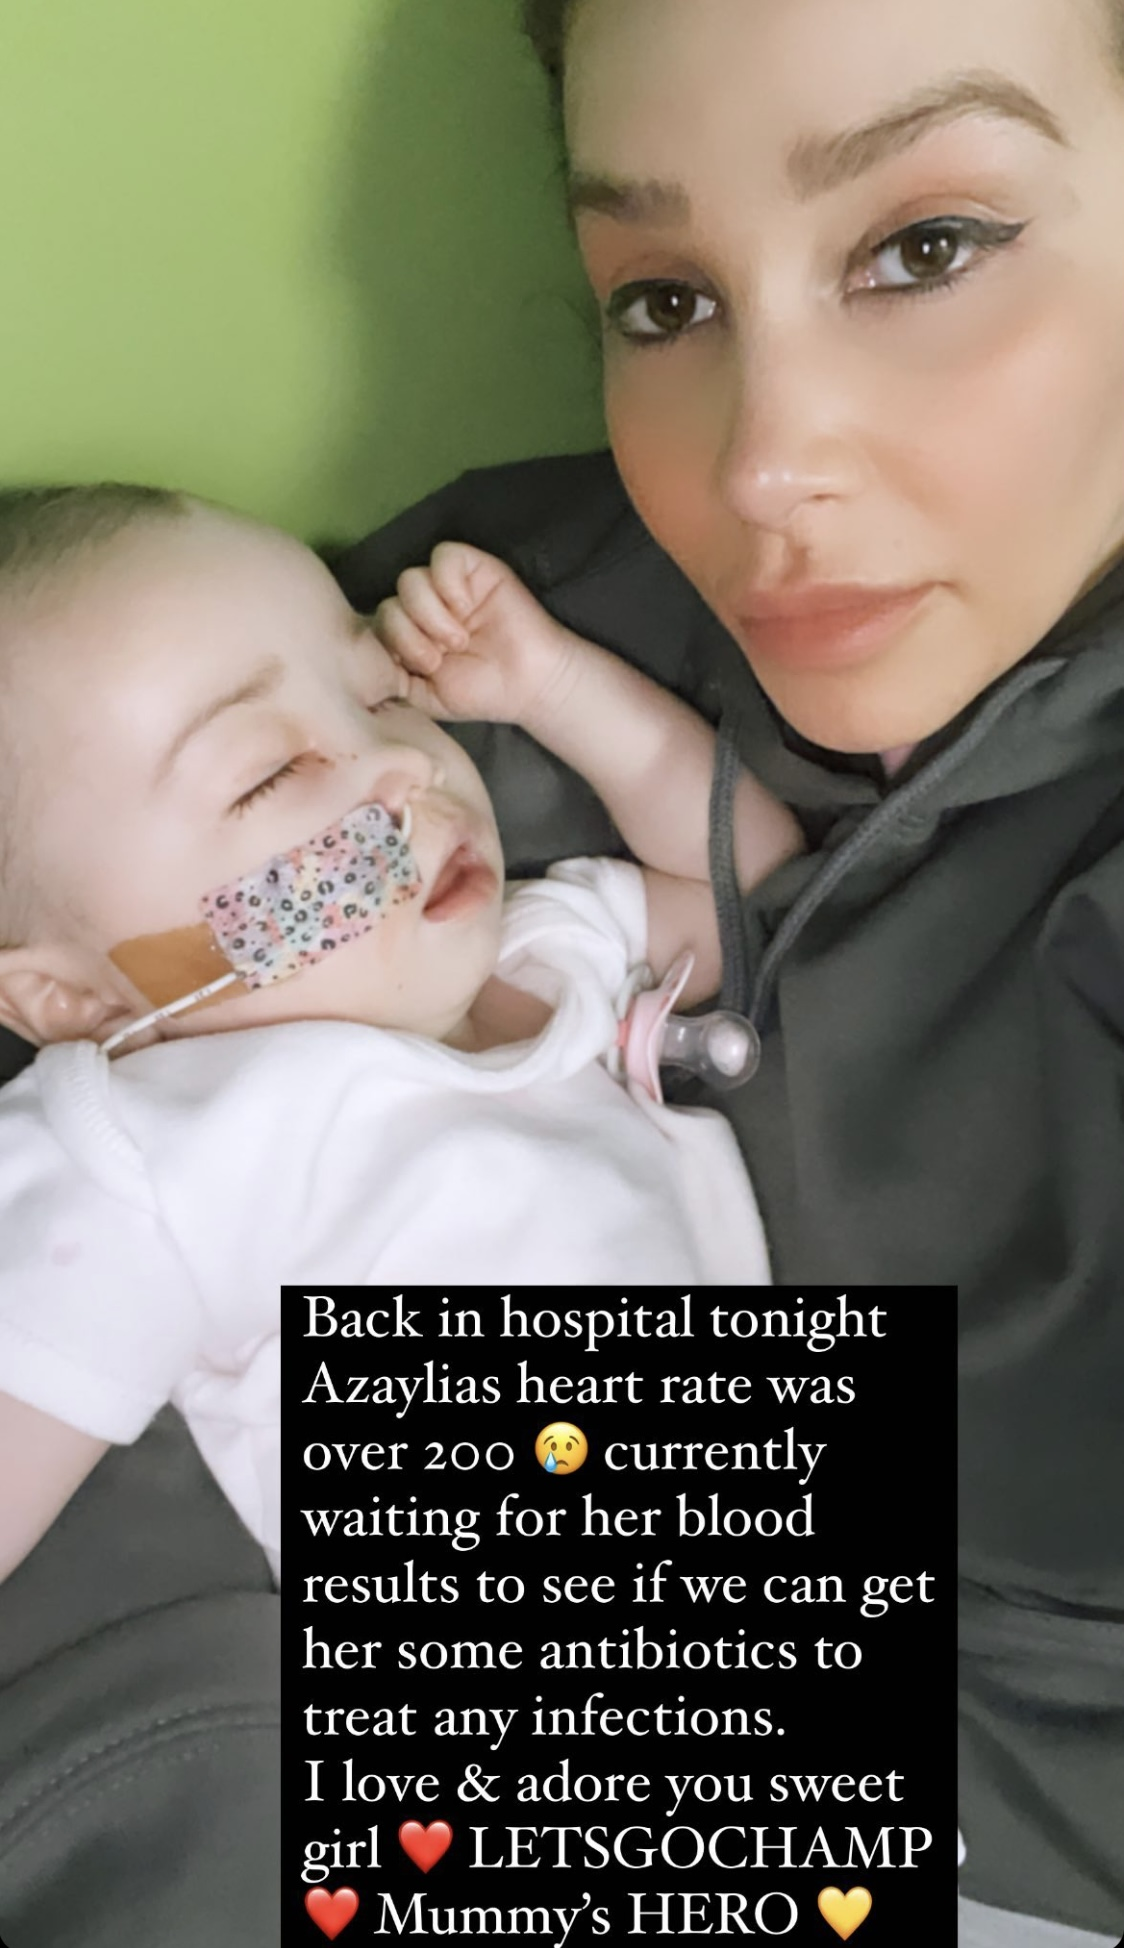 Ashley Cain's Daughter Rushed To Hospital Shortly After Returning Home With 'Days To Live'